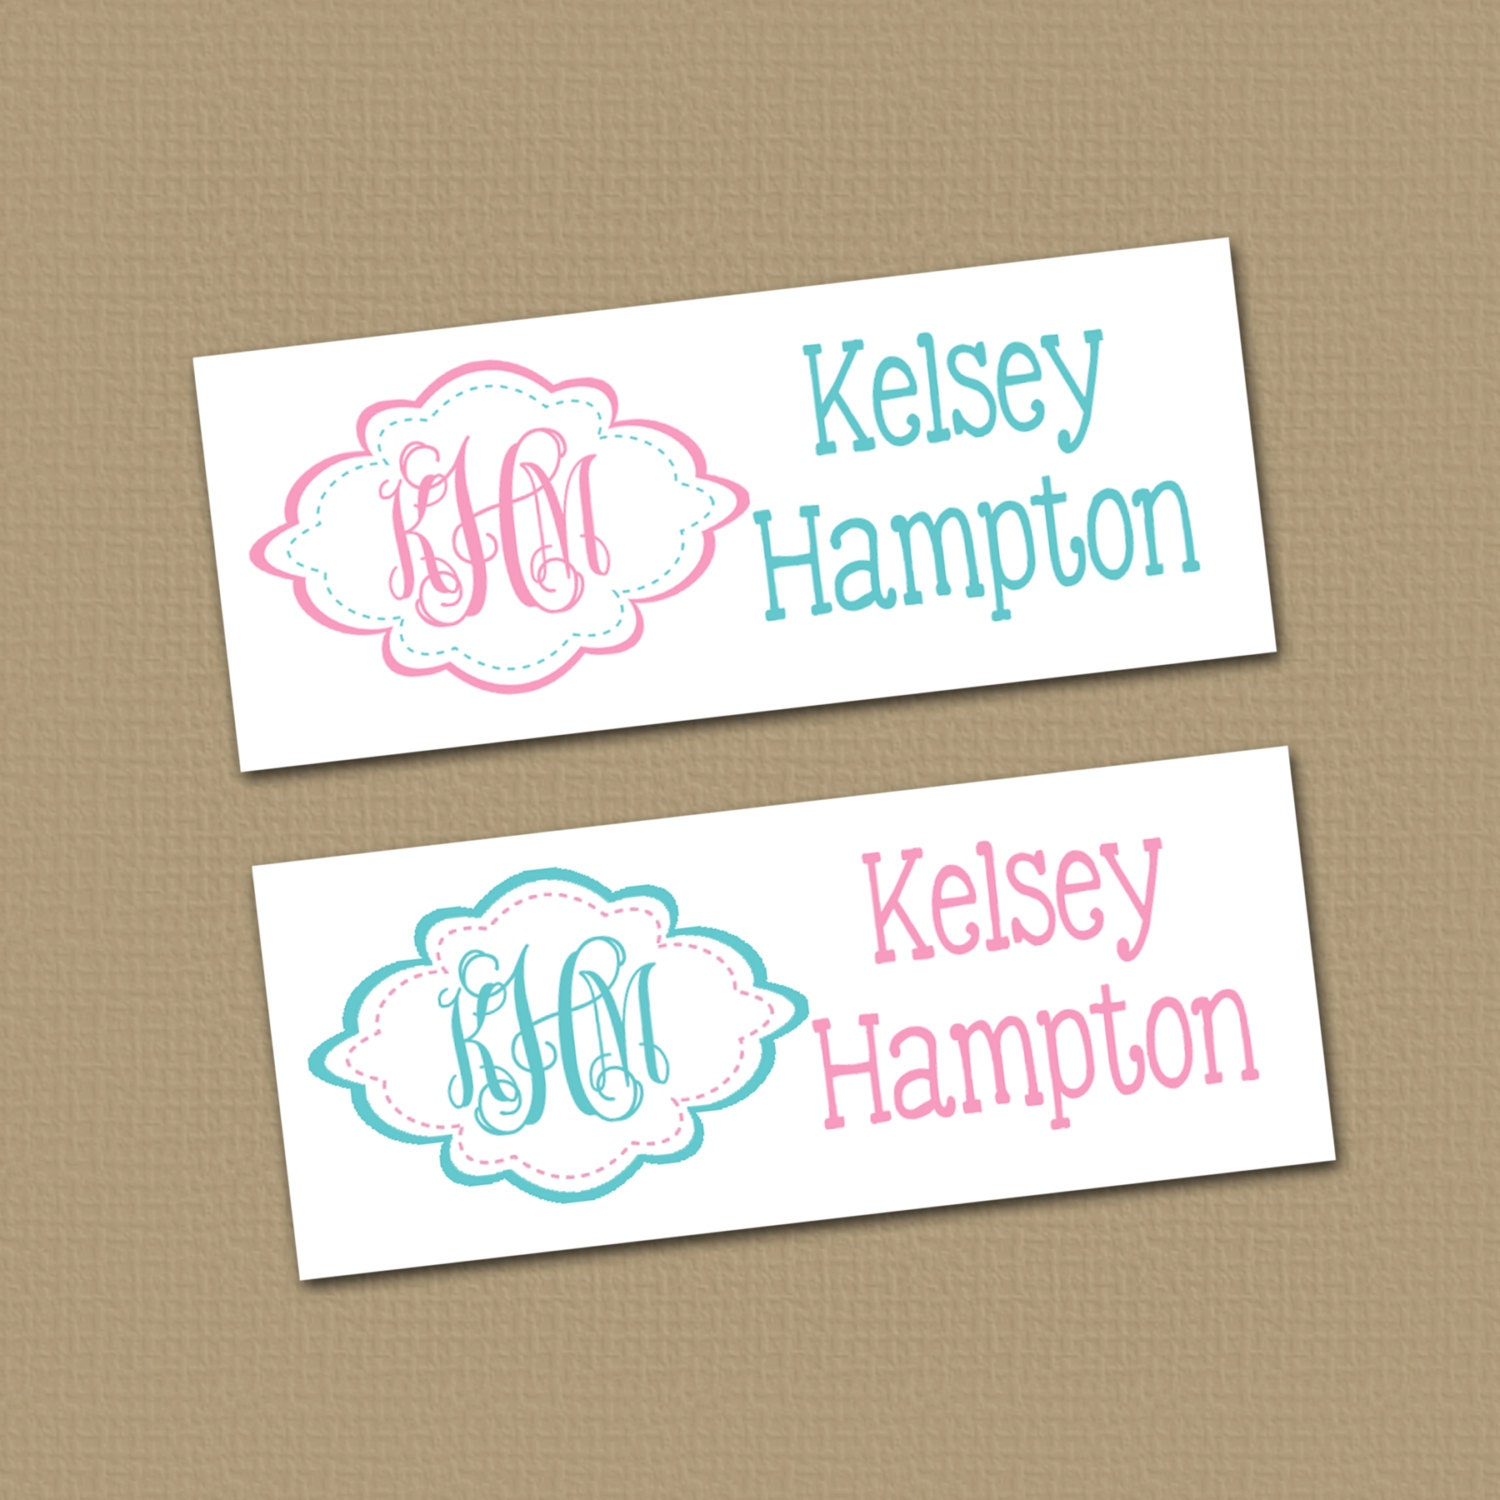 Personalized Waterproof Label Stickers Perfect For Bottles